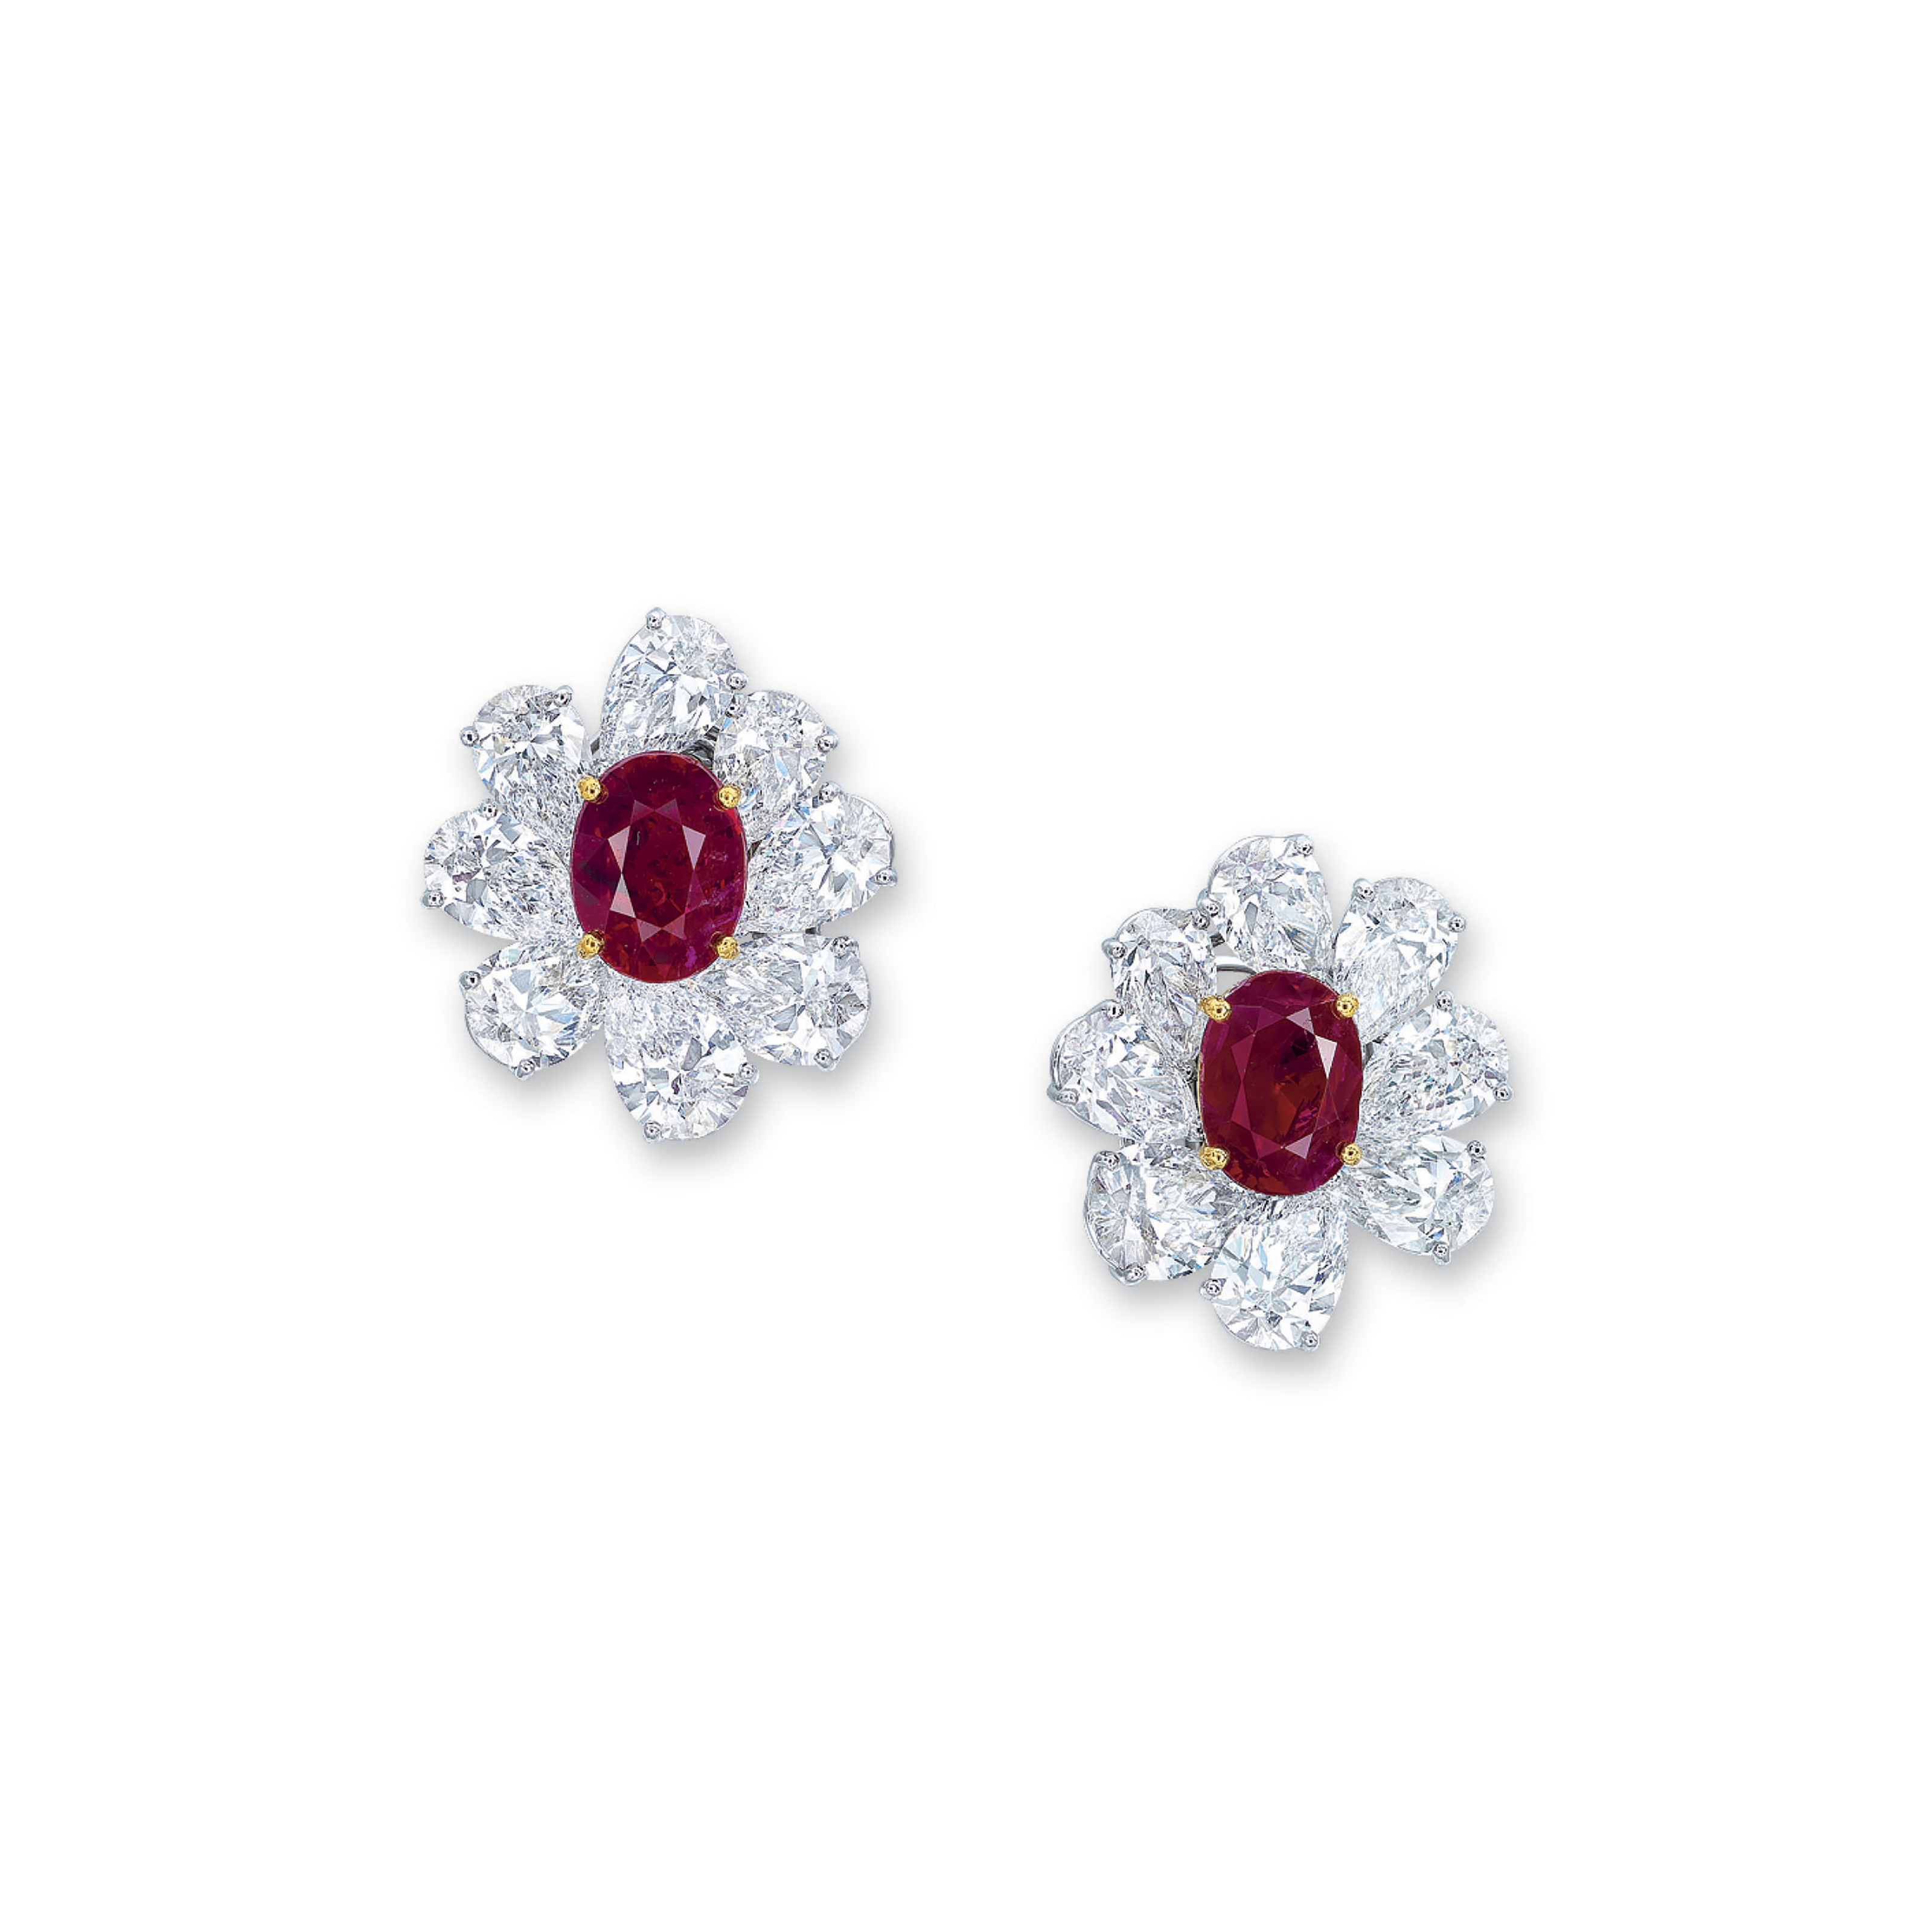 AN IMPORTANT PAIR OF RUBY AND DIAMOND EARRINGS